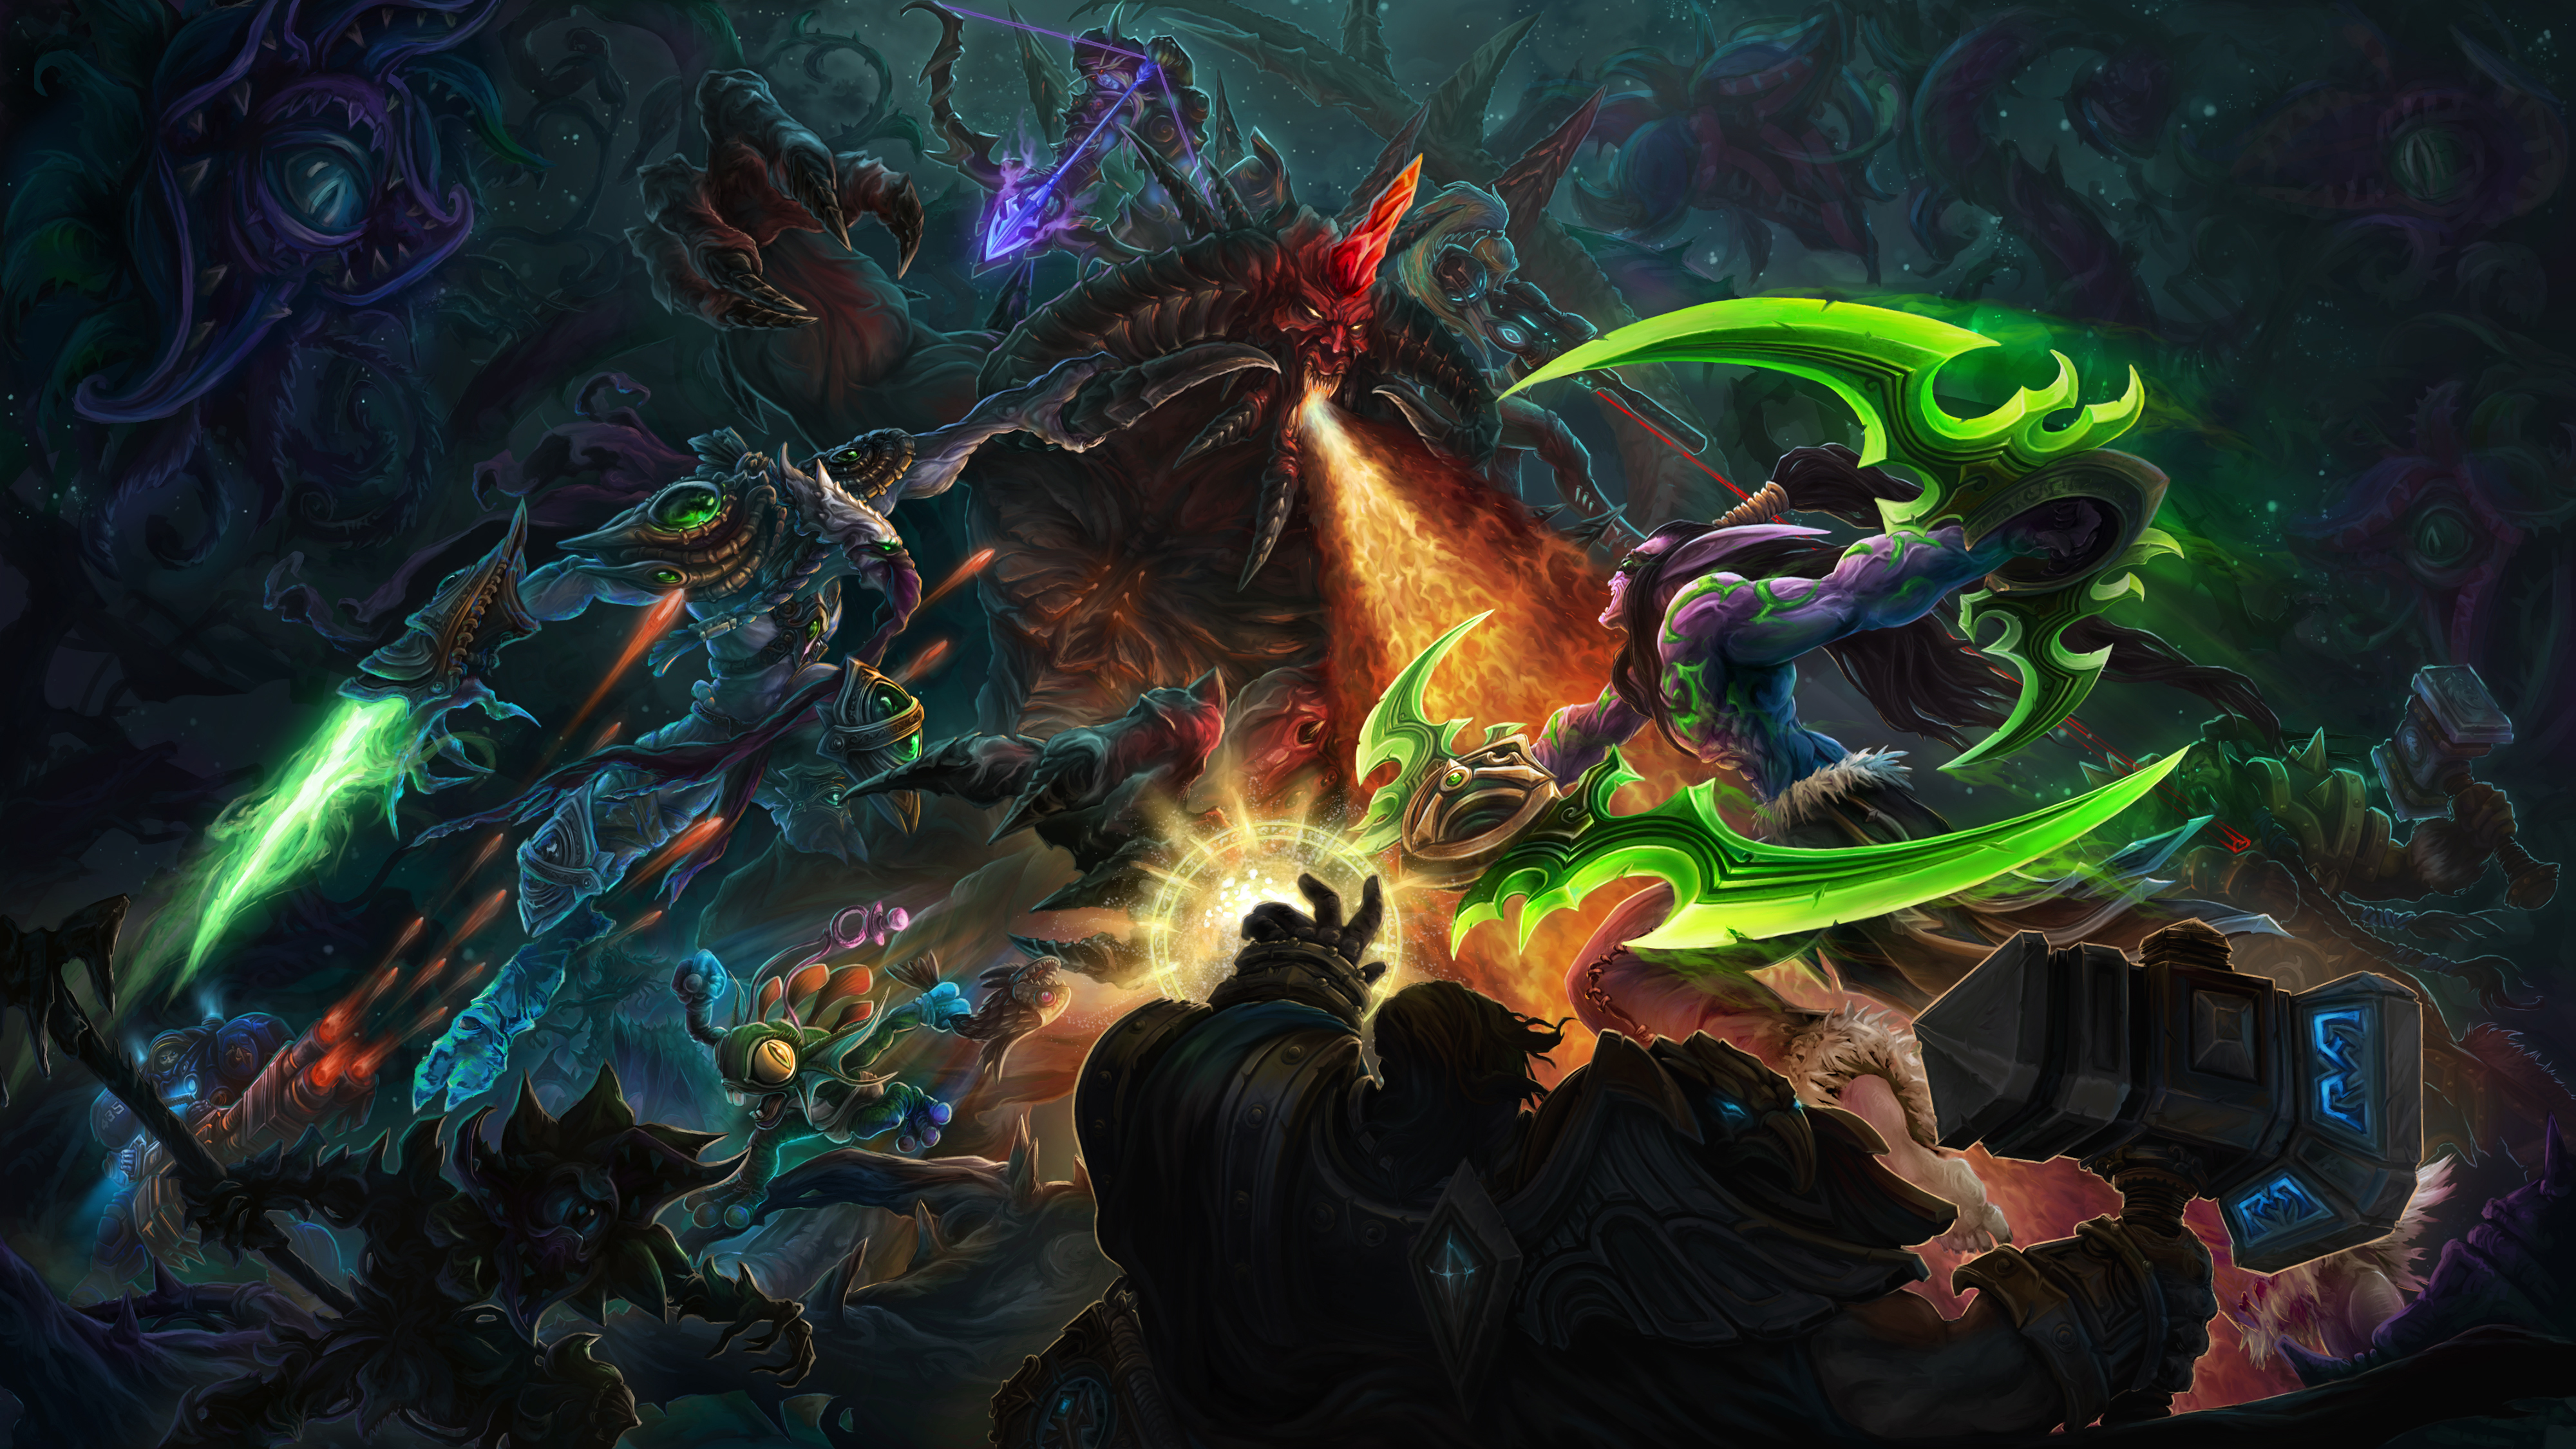 A glimpse of HOTS Epic Universe by IosifChezan